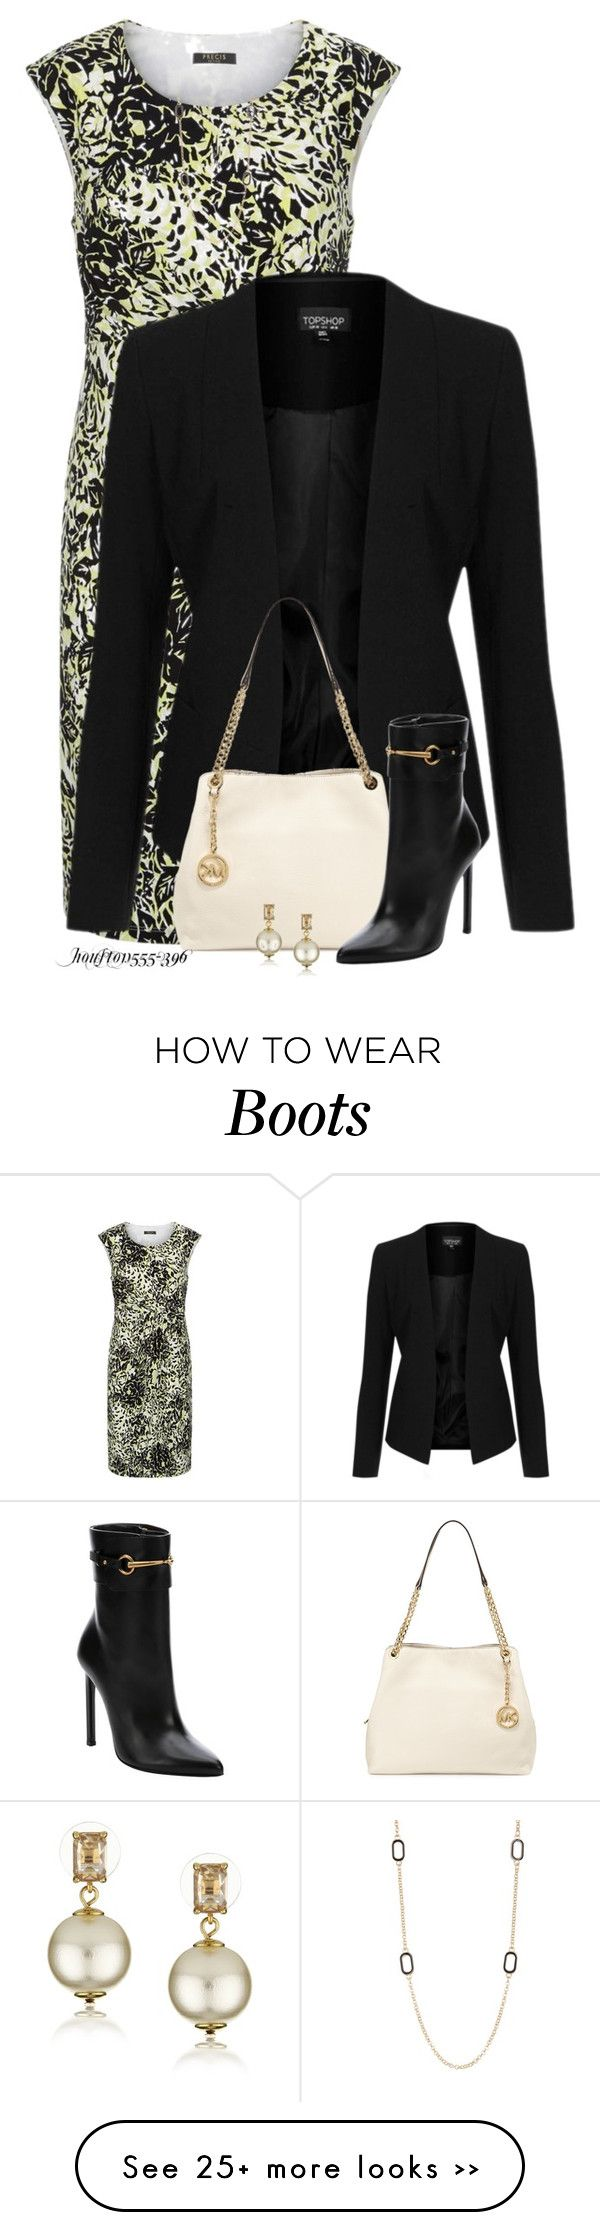 """Gucci Boots"" by houston555-396 on Polyvore featuring Mode, Precis Petite, Topshop, MICHAEL Michael Kors, Gucci, Kate Spade und Nordstrom Rack"